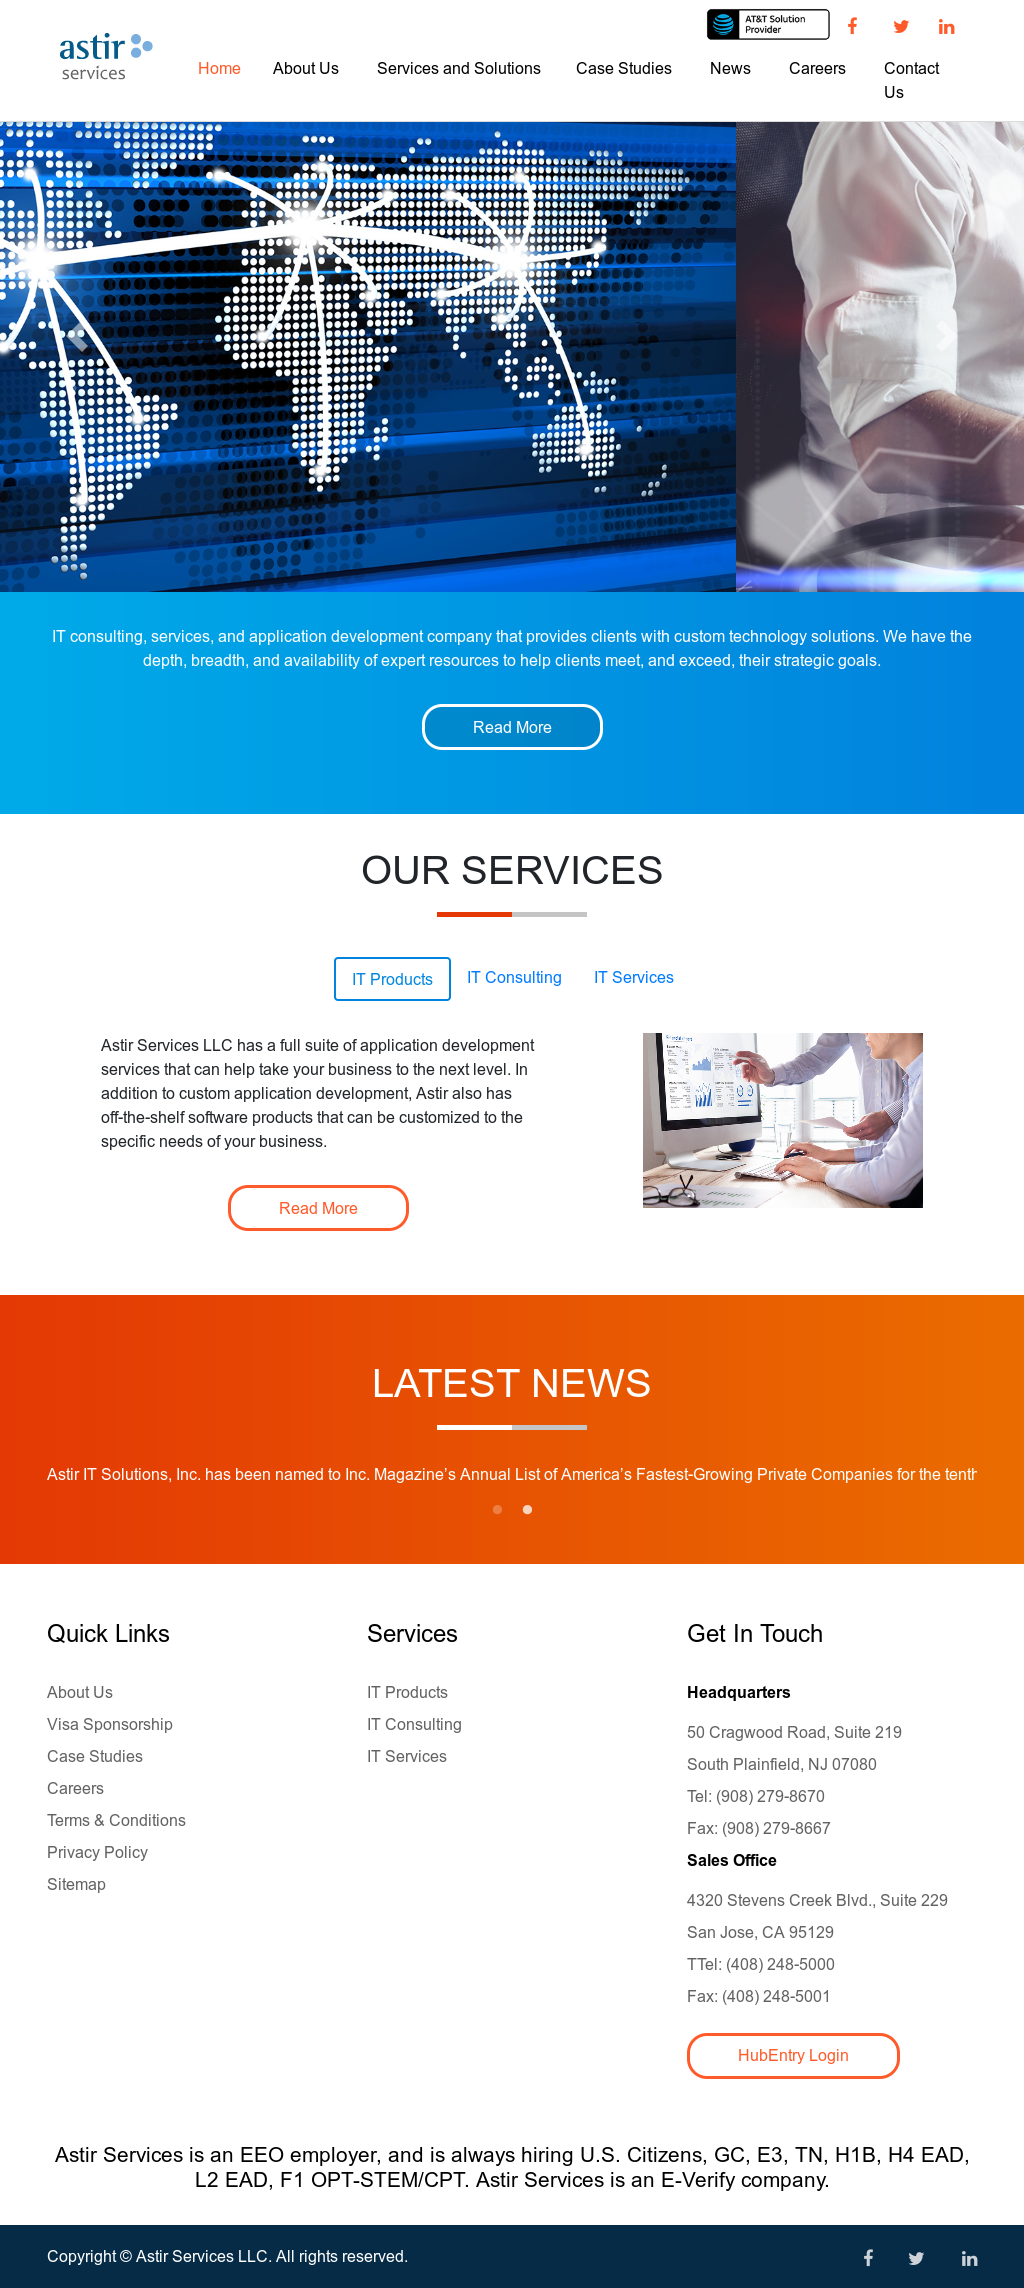 Astirservices Competitors, Revenue and Employees - Owler Company Profile